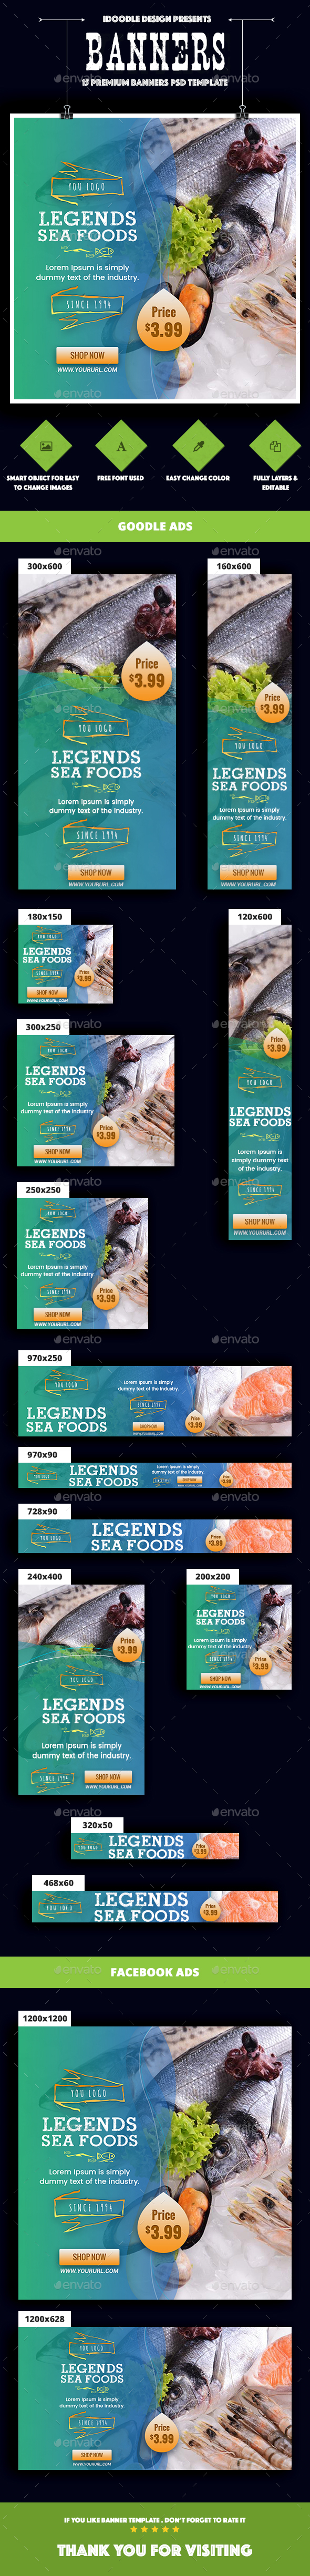 SeaFood Store, Fresh Food Banners Ad - Banners & Ads Web Elements